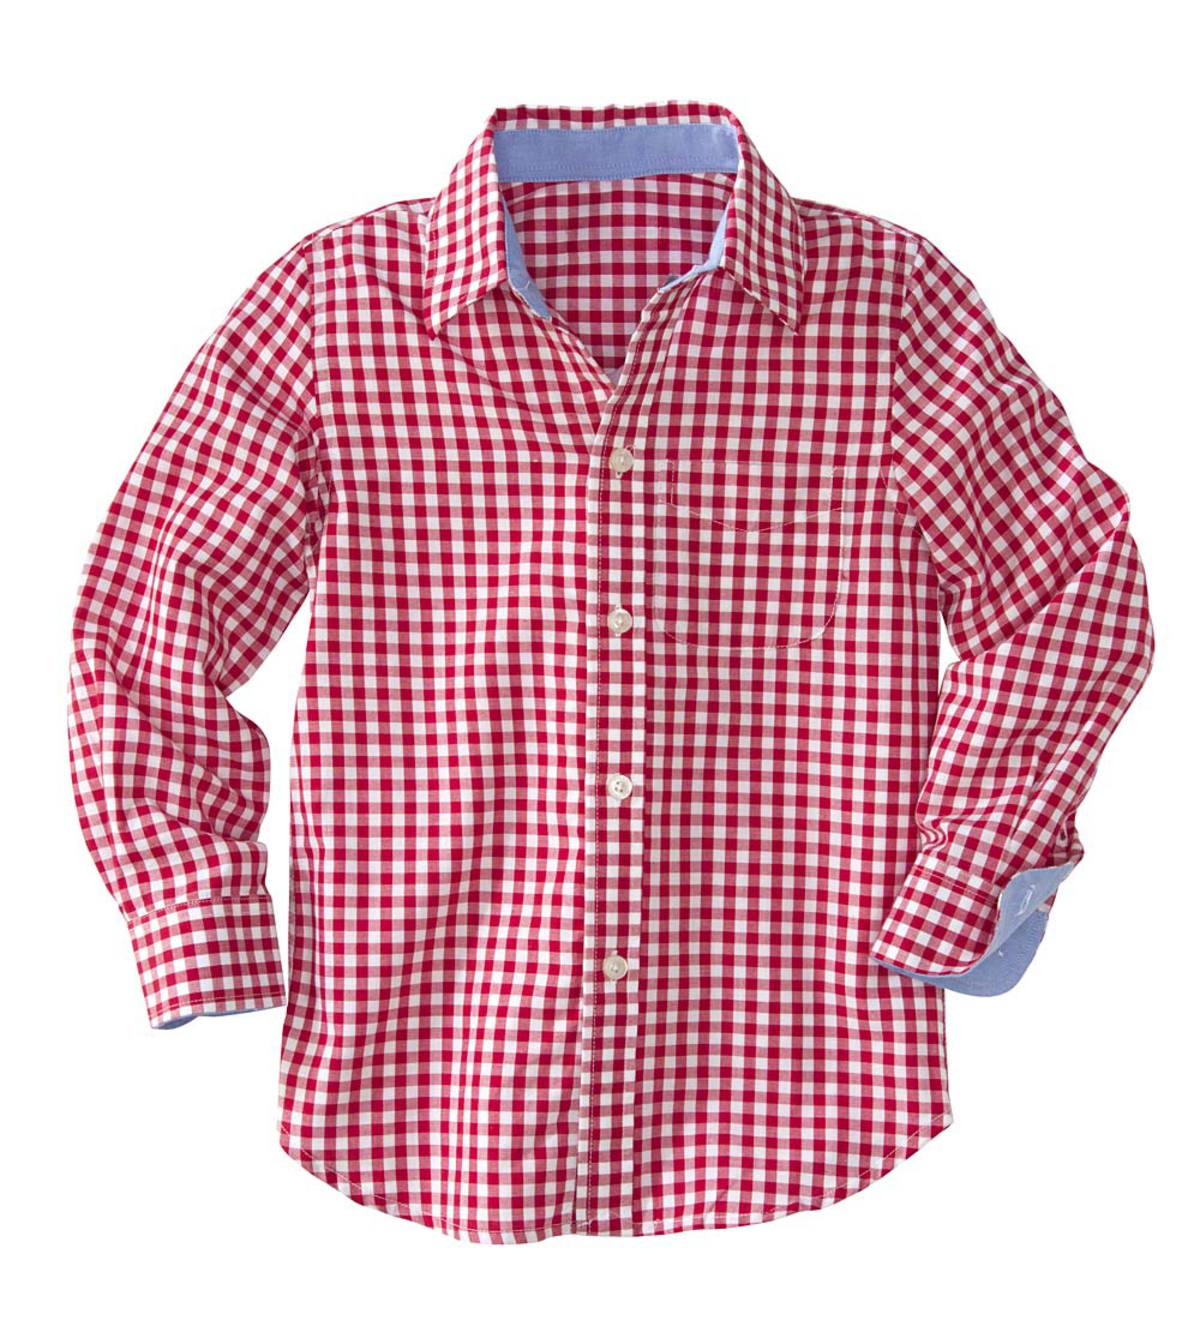 Kids' Check Shirt - Red - 12